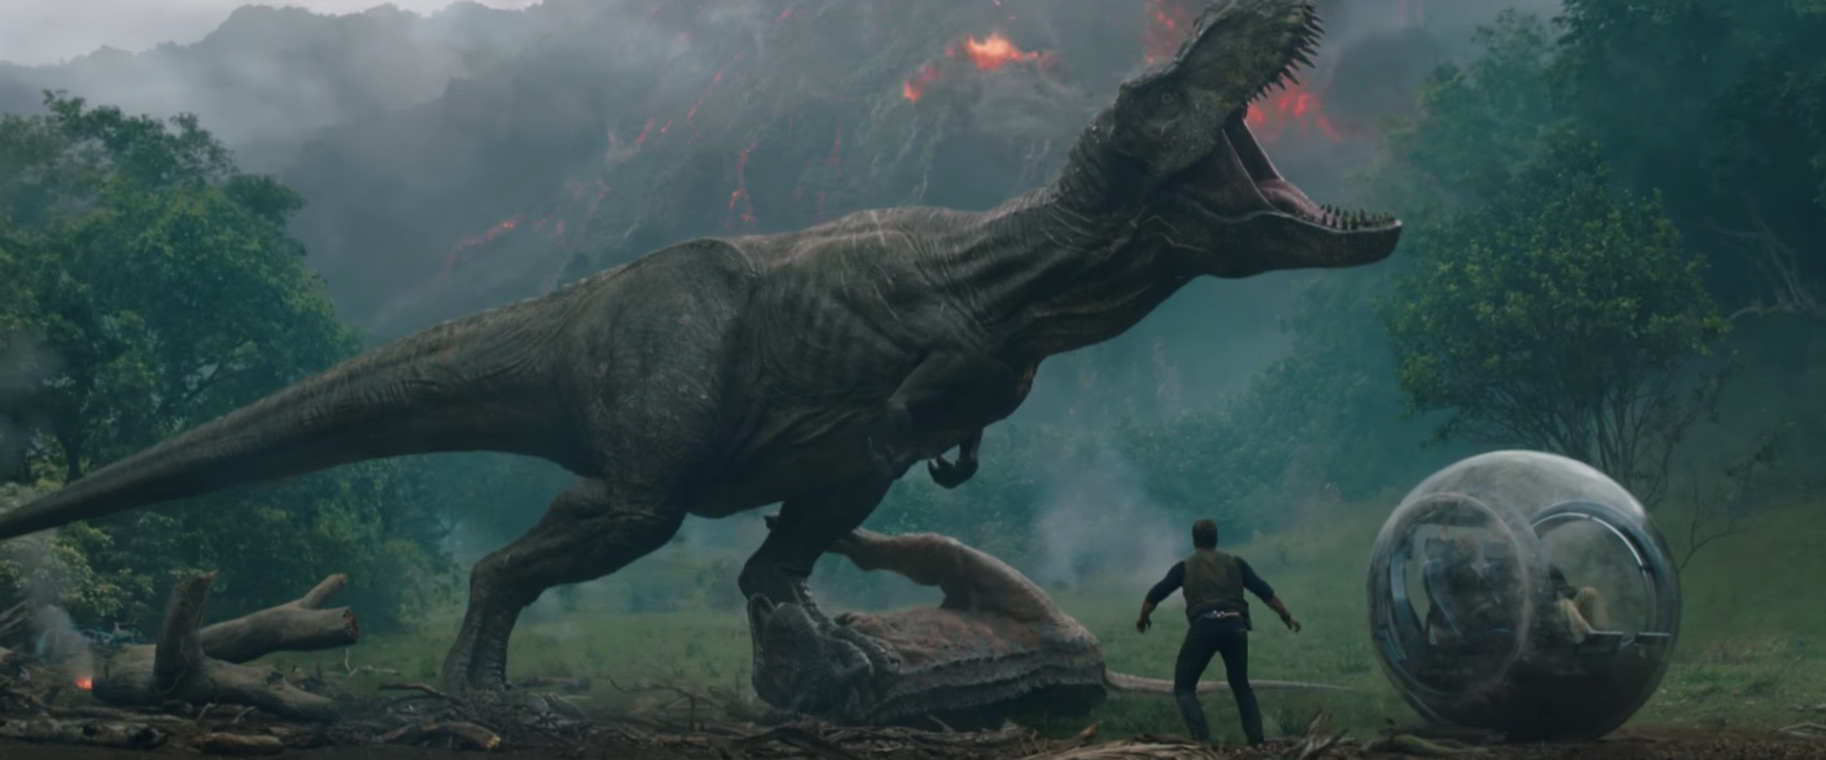 Box Office World Jurassic World Fallen Kingdom Dinosaurs Roar At Summer Box